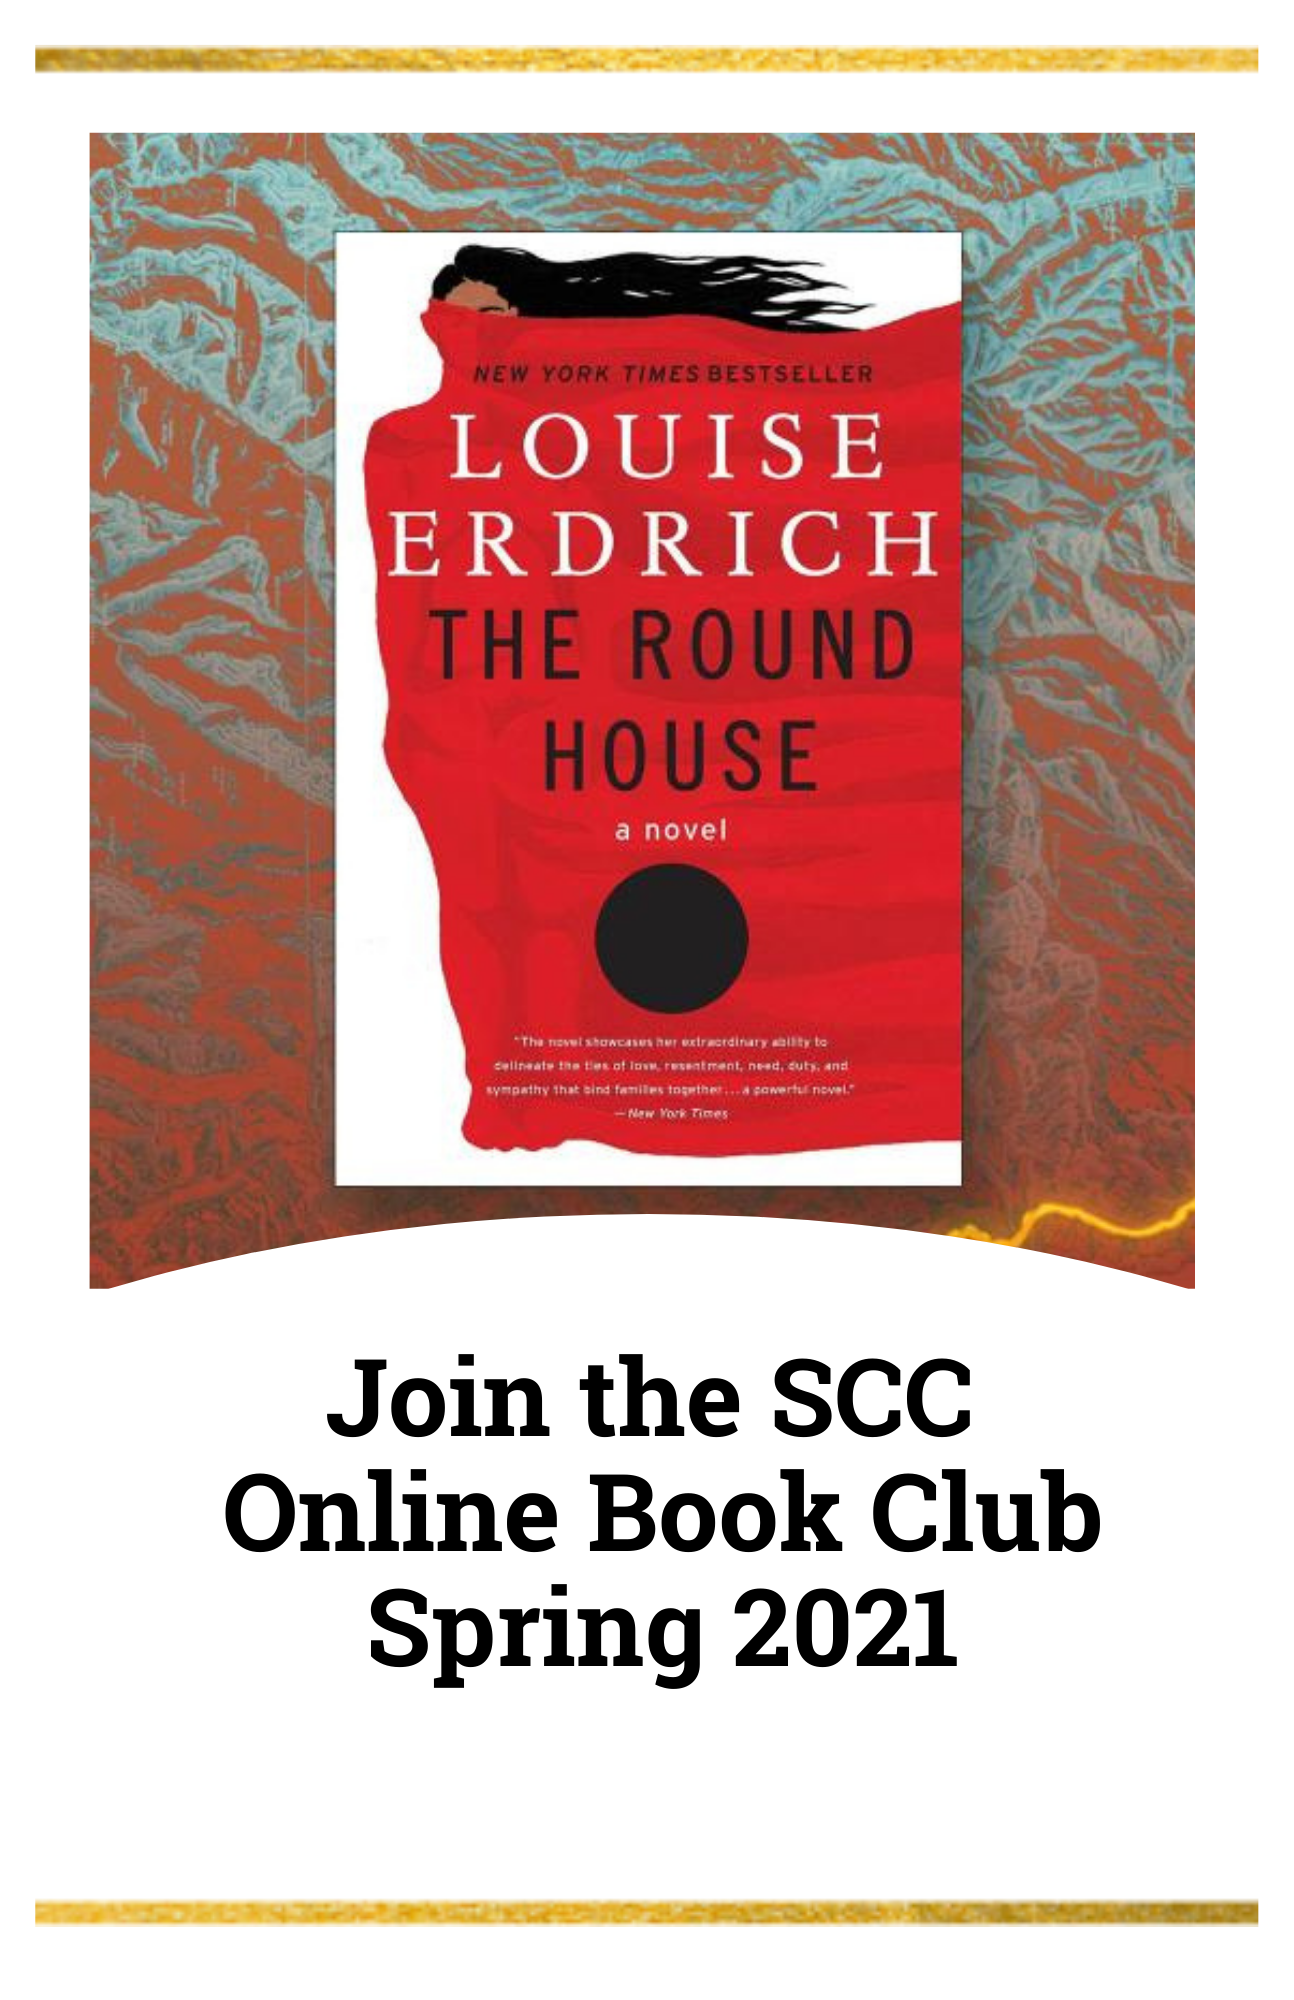 Join the SCC Online Book Club Spring 2021